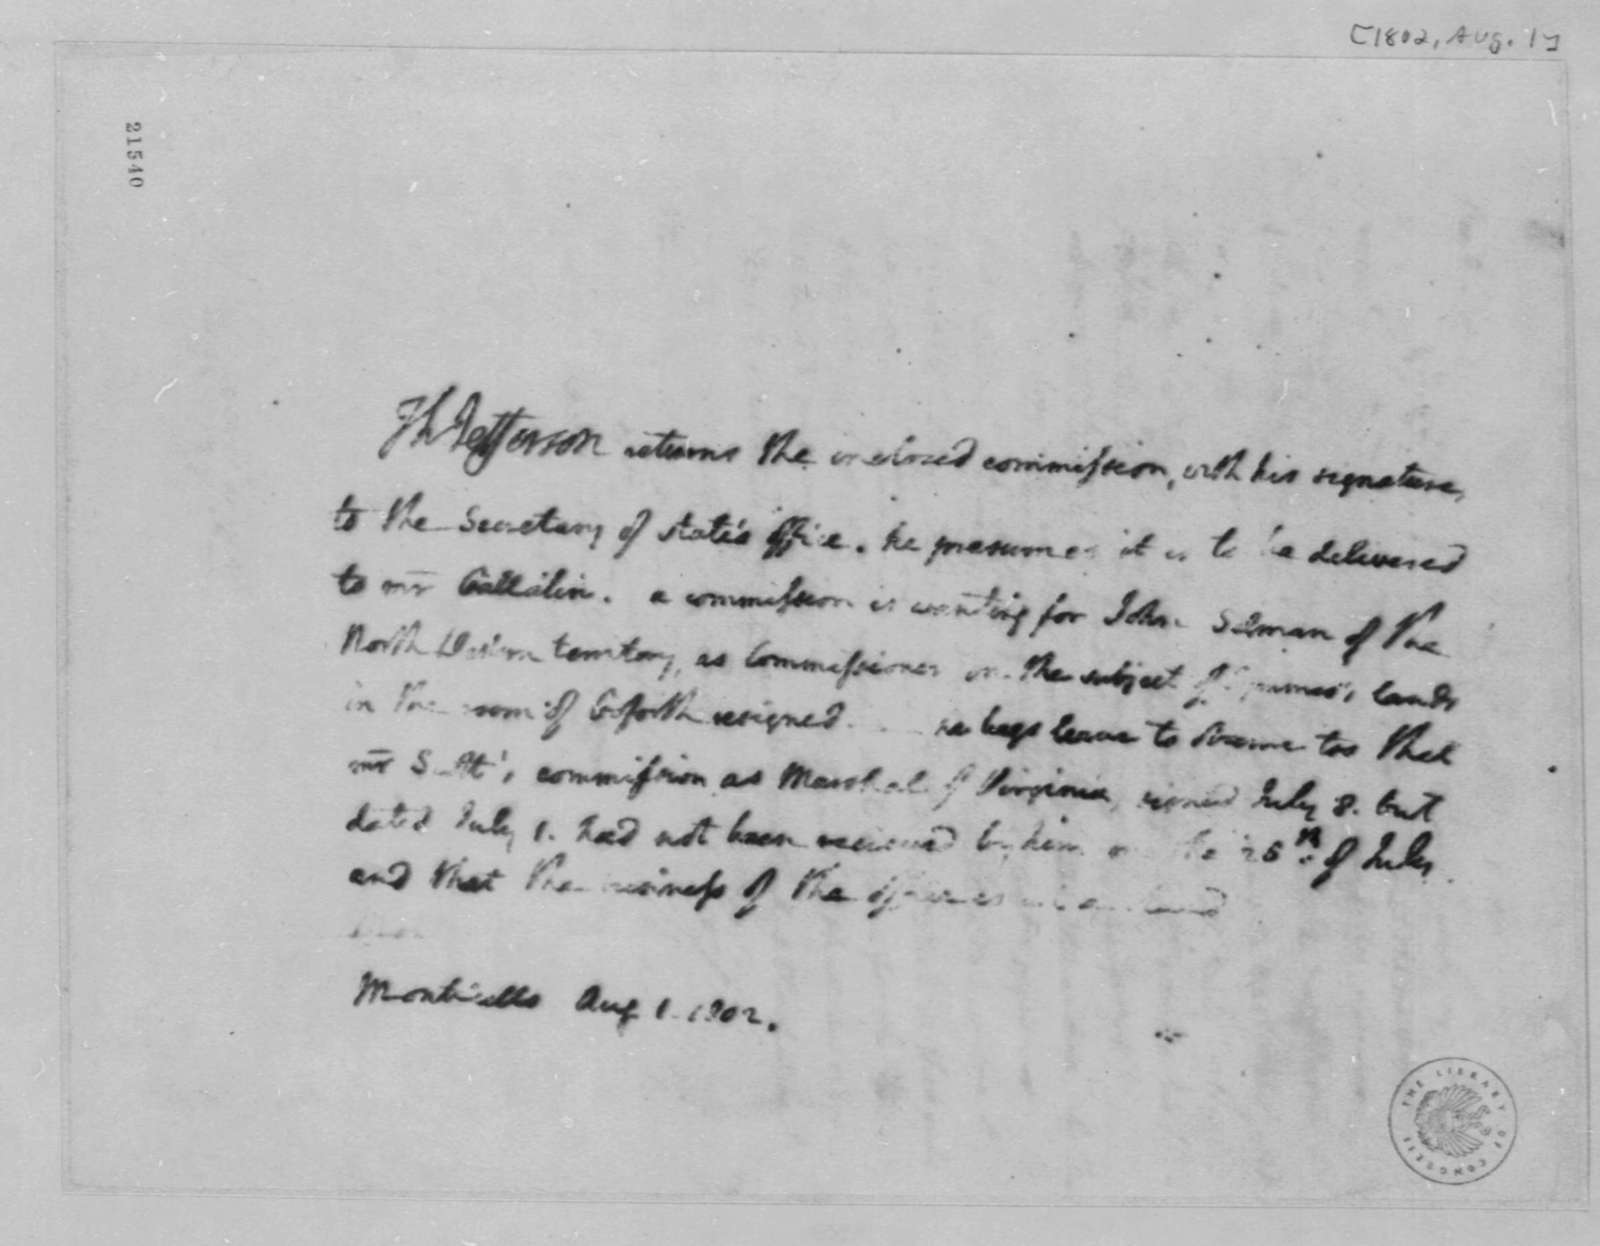 Thomas Jefferson to James Madison, August 1, 1802